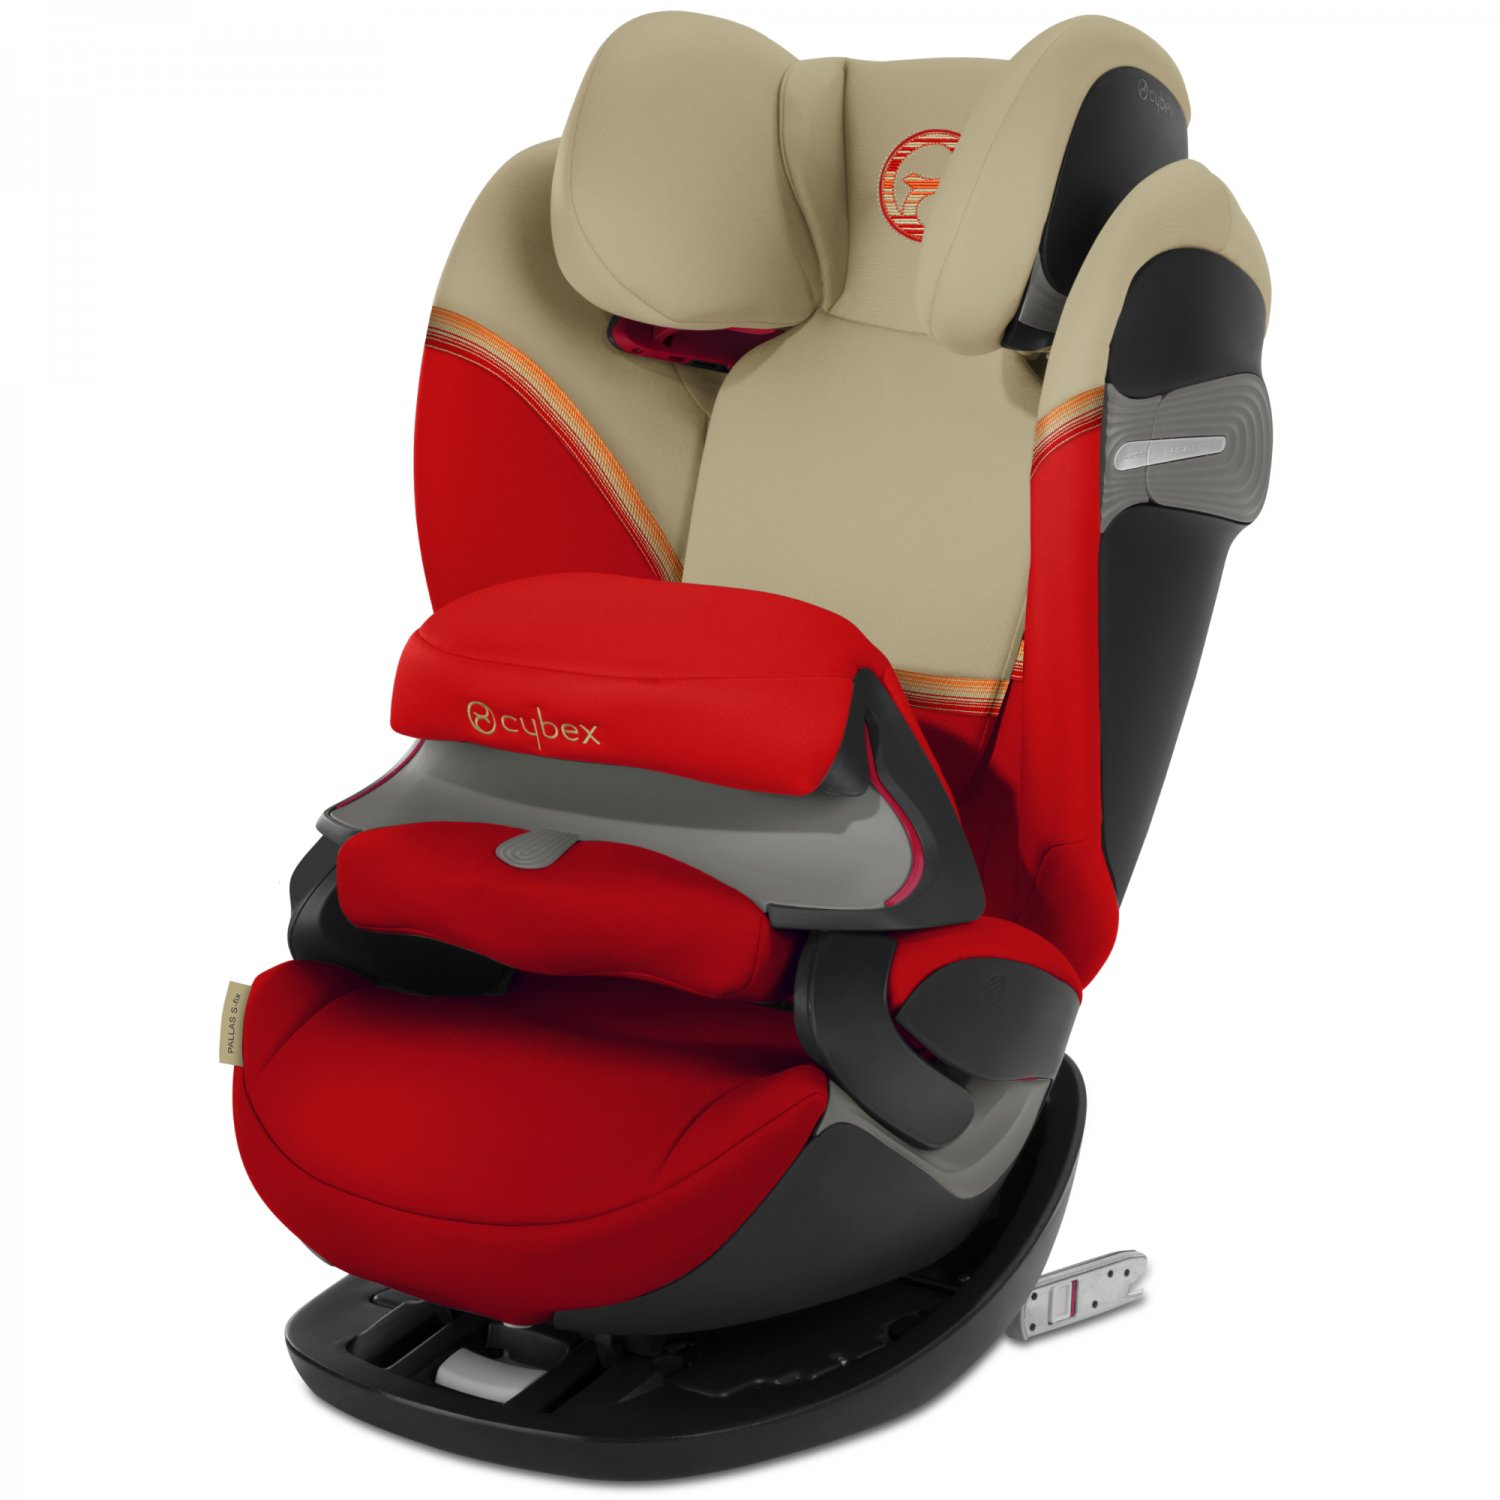 CYBEX ISOFIX Installation Aids Black For simplified Car Seat Installation